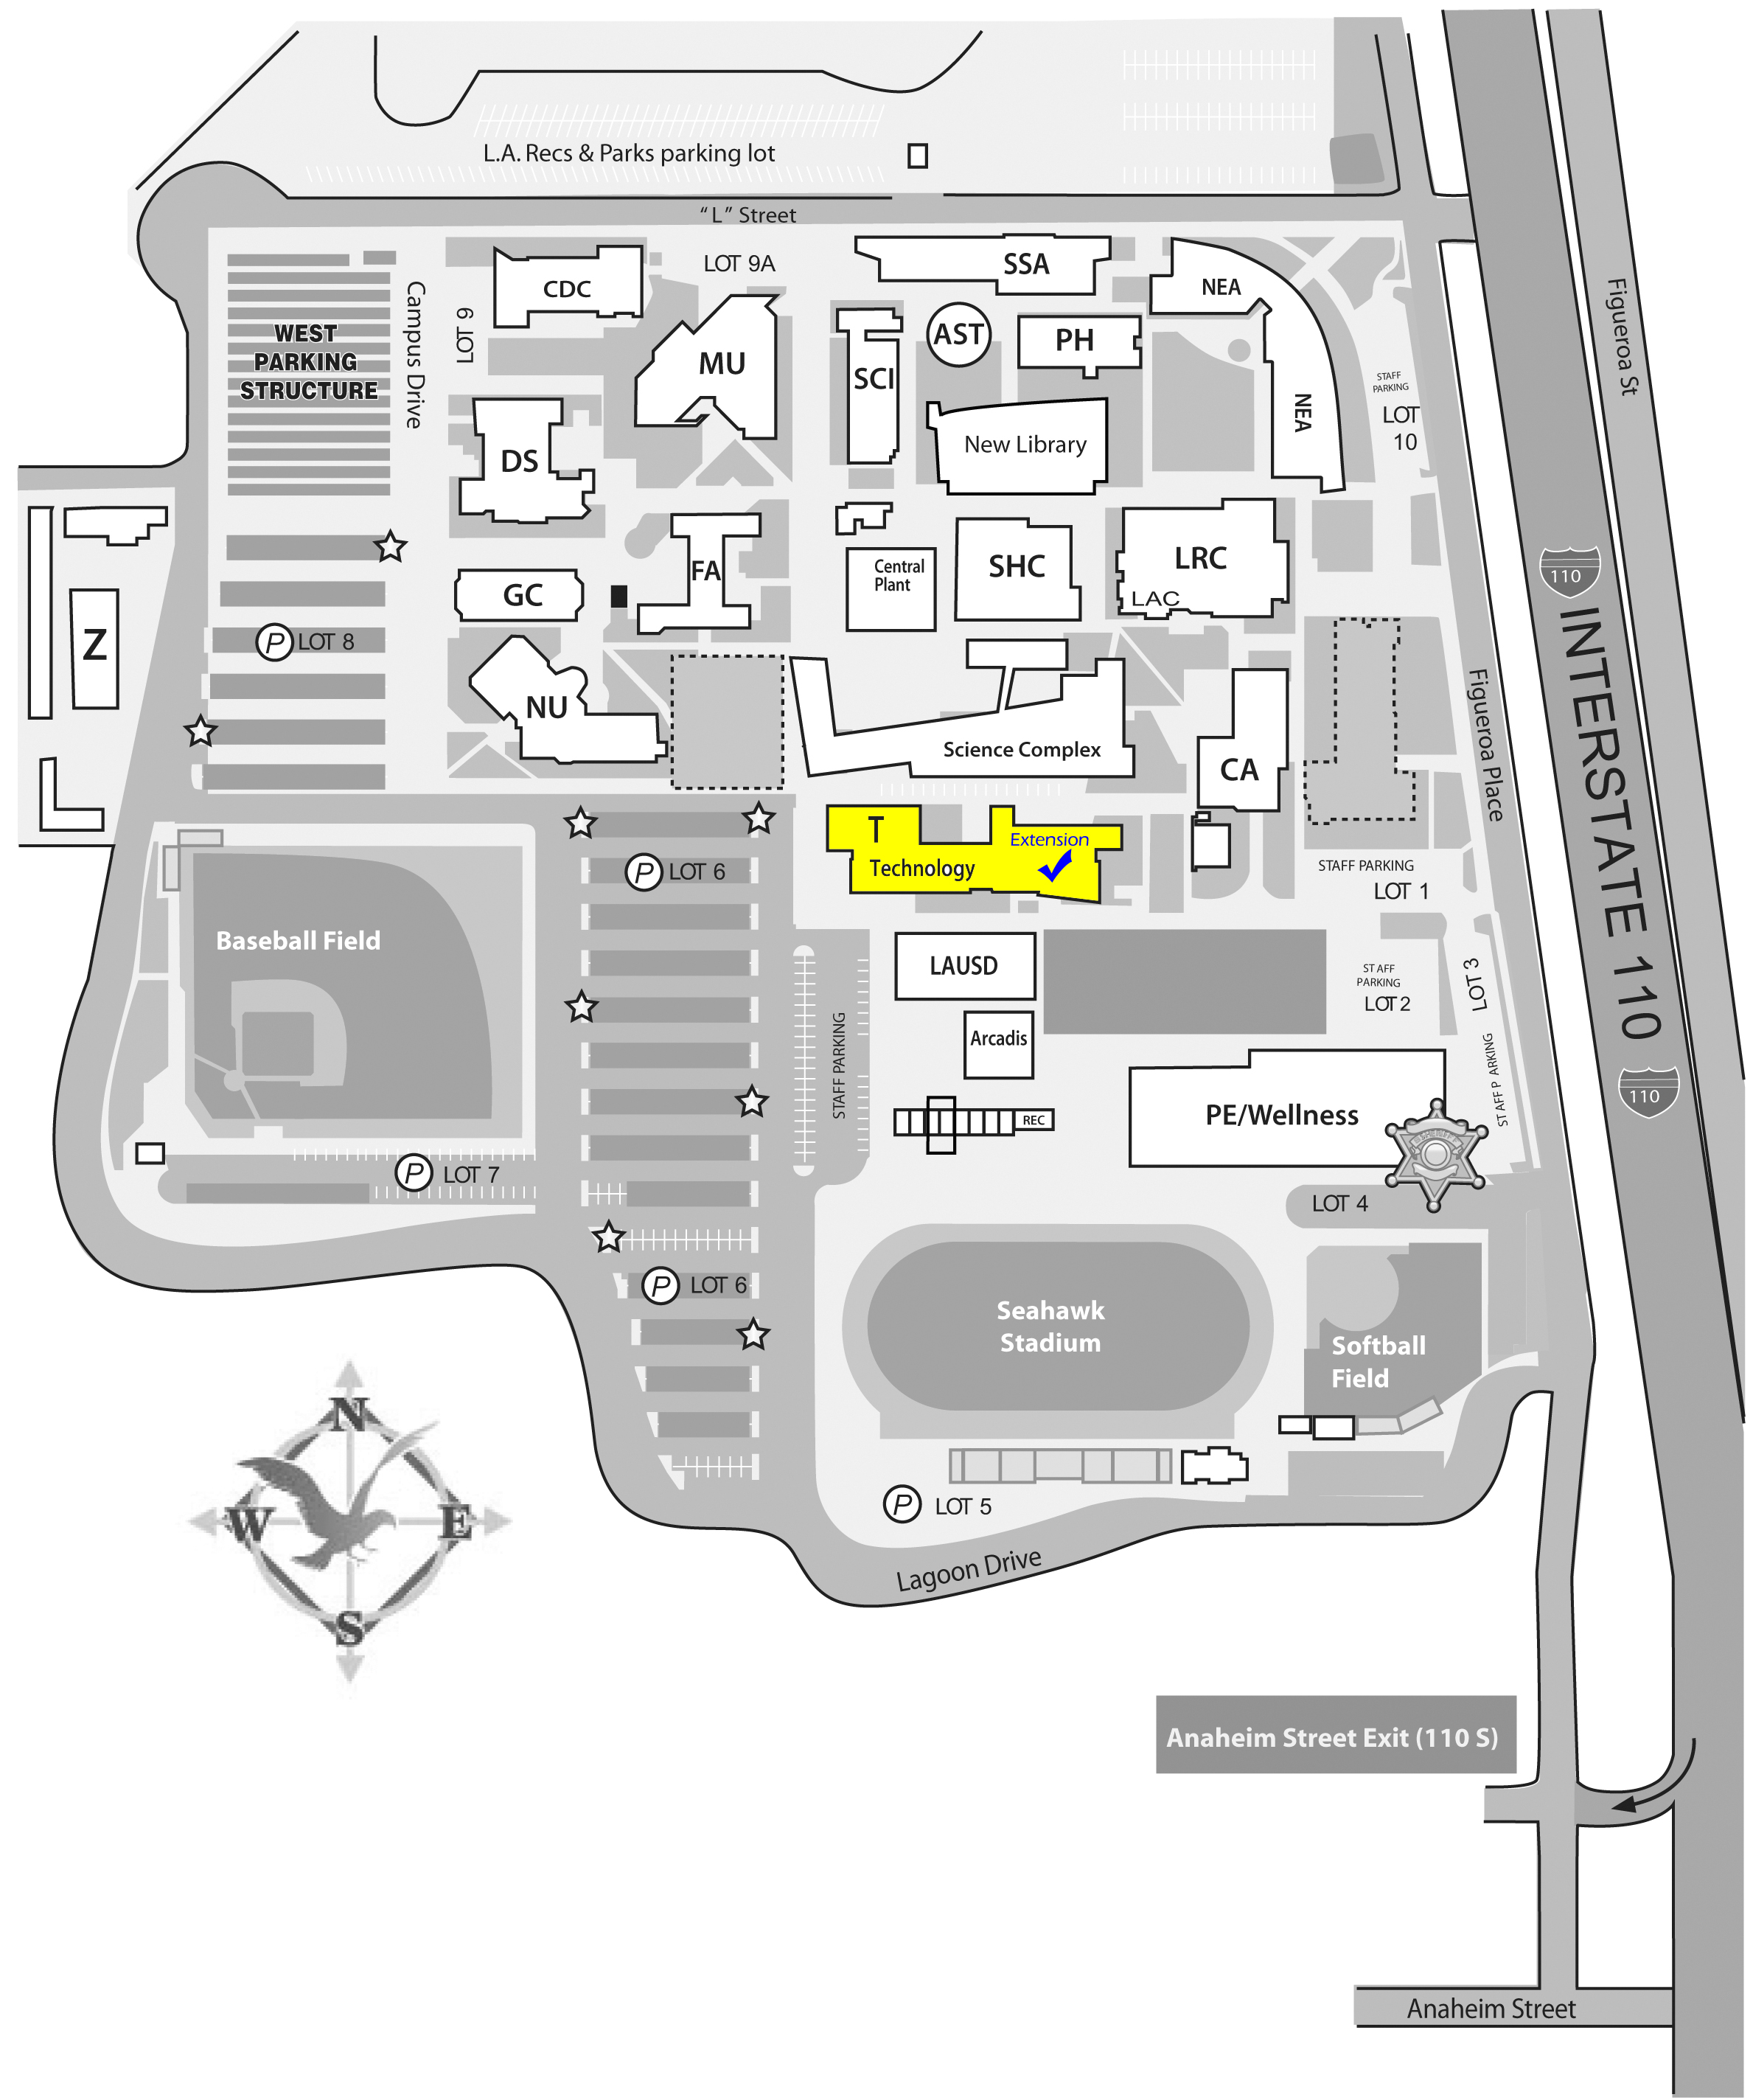 LAHC EXT Campus Map